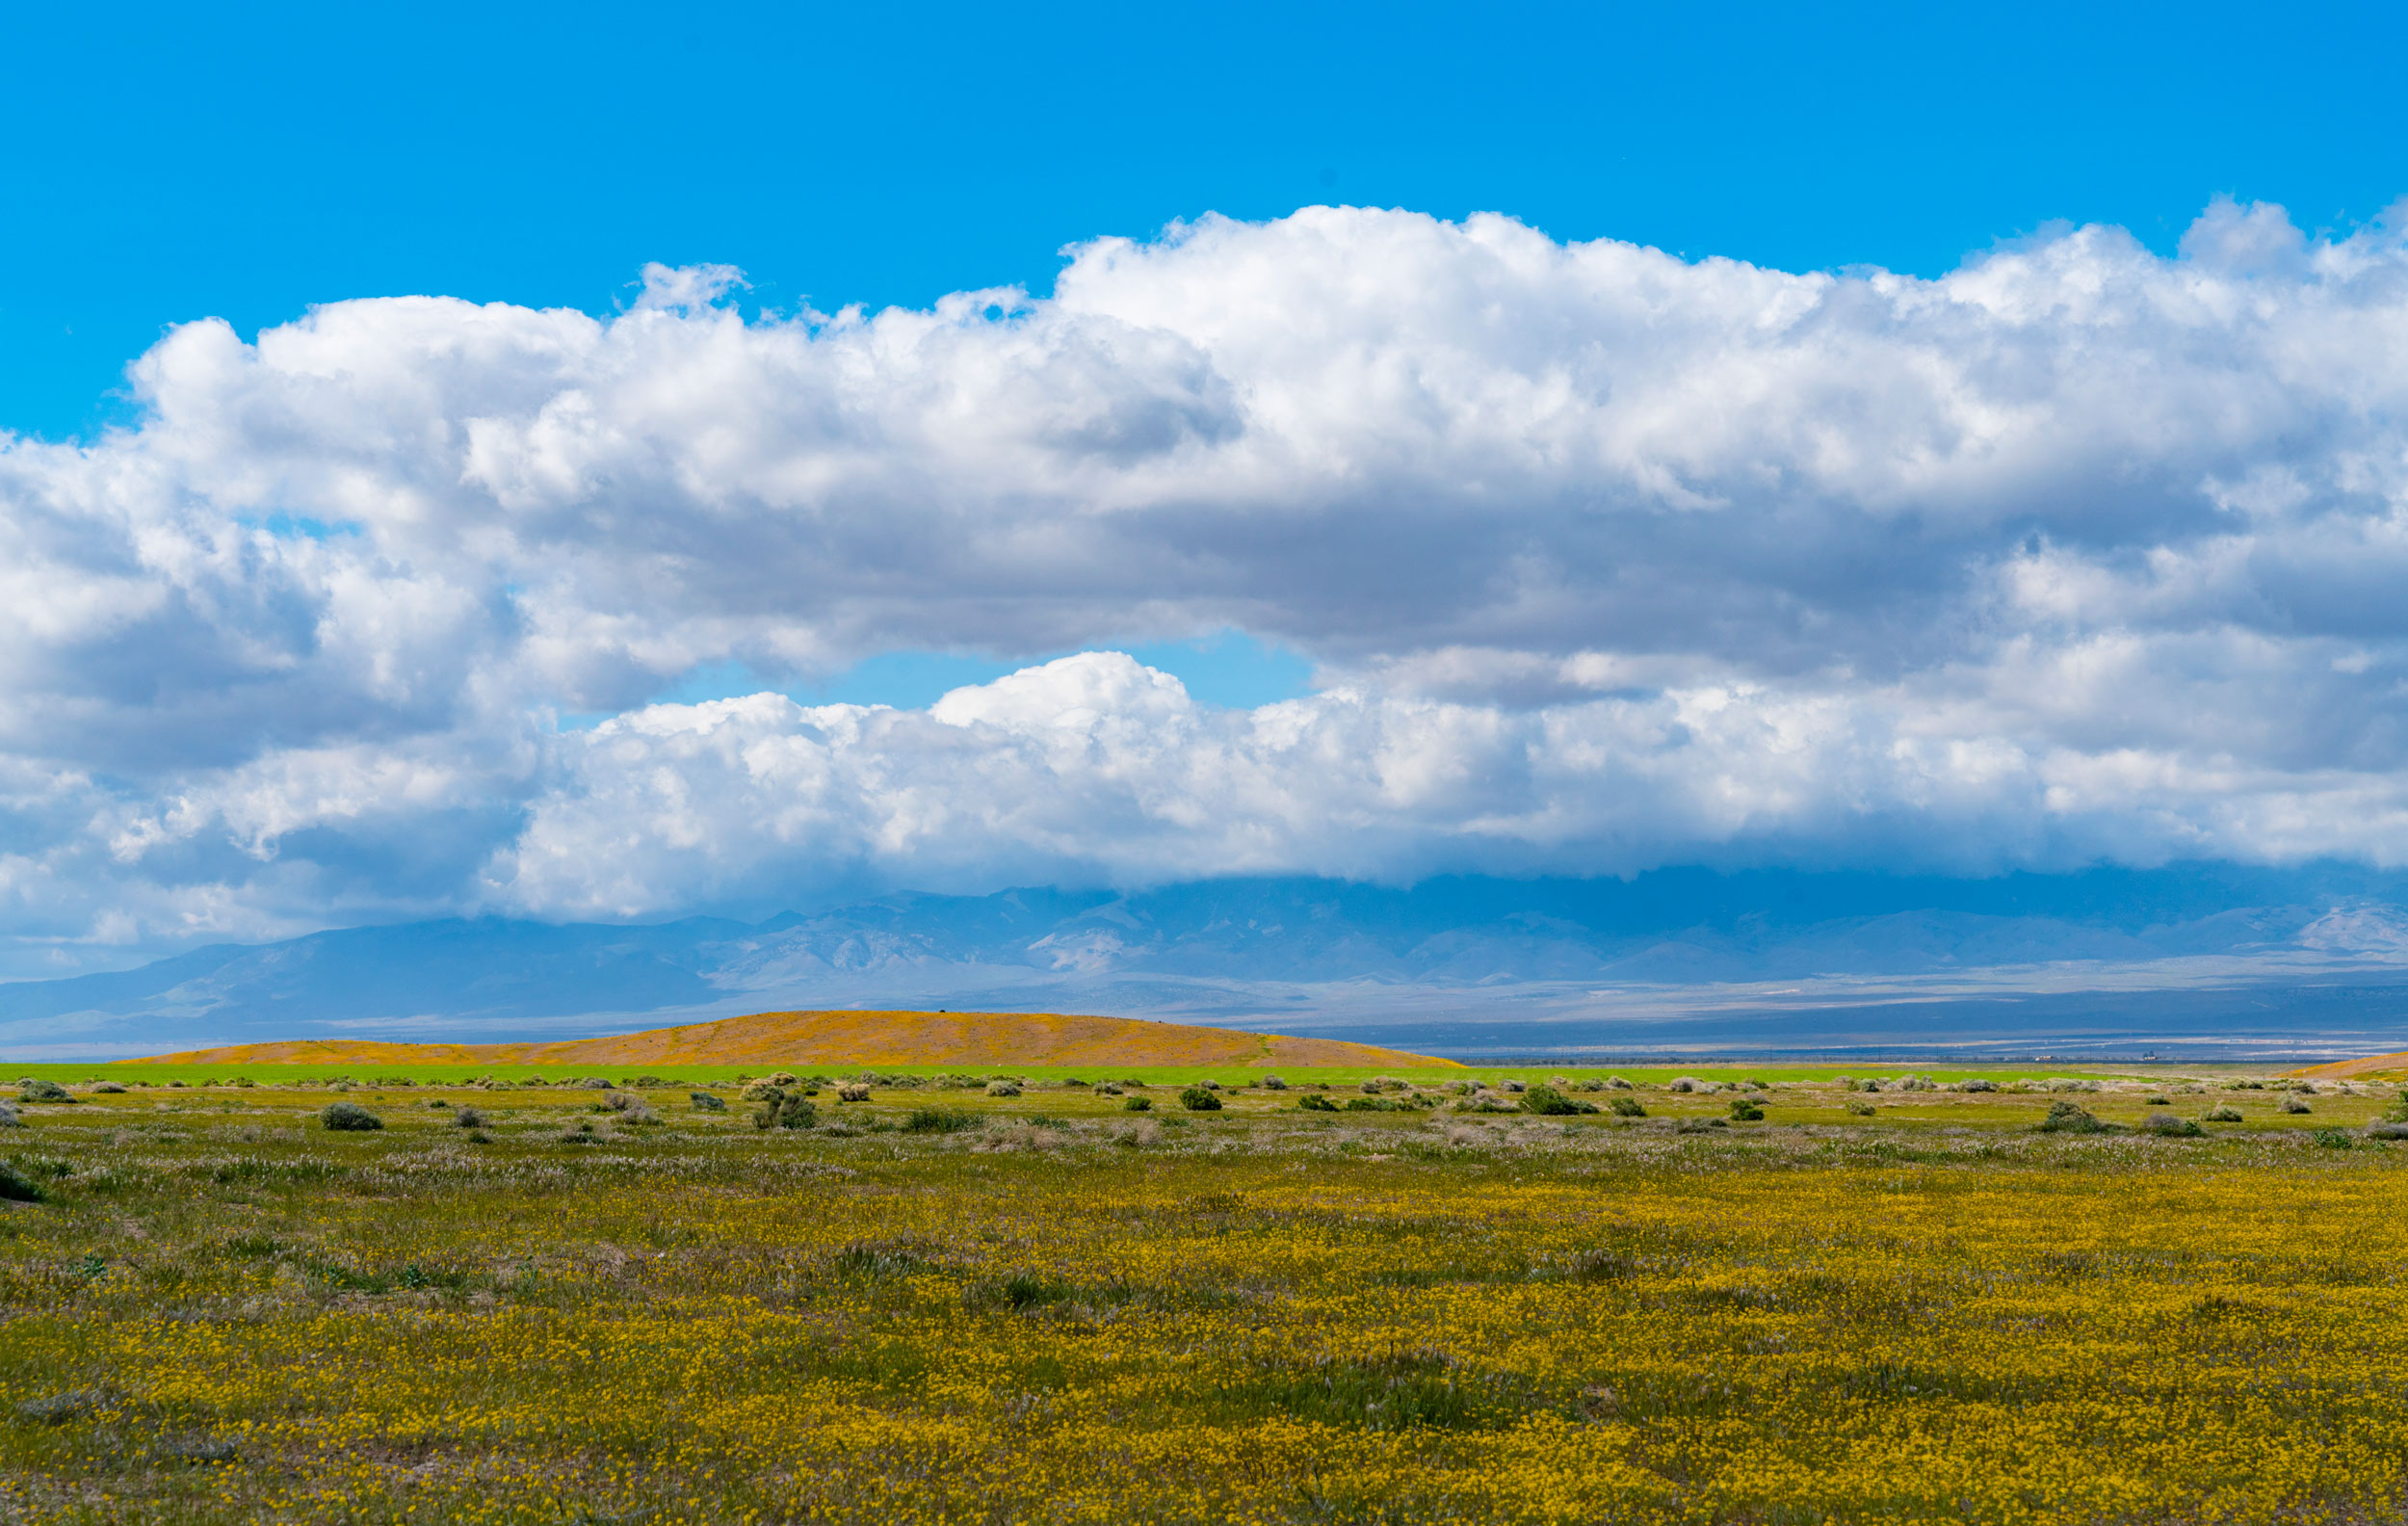 The poppy-laden hills of Antelope Valley come into view